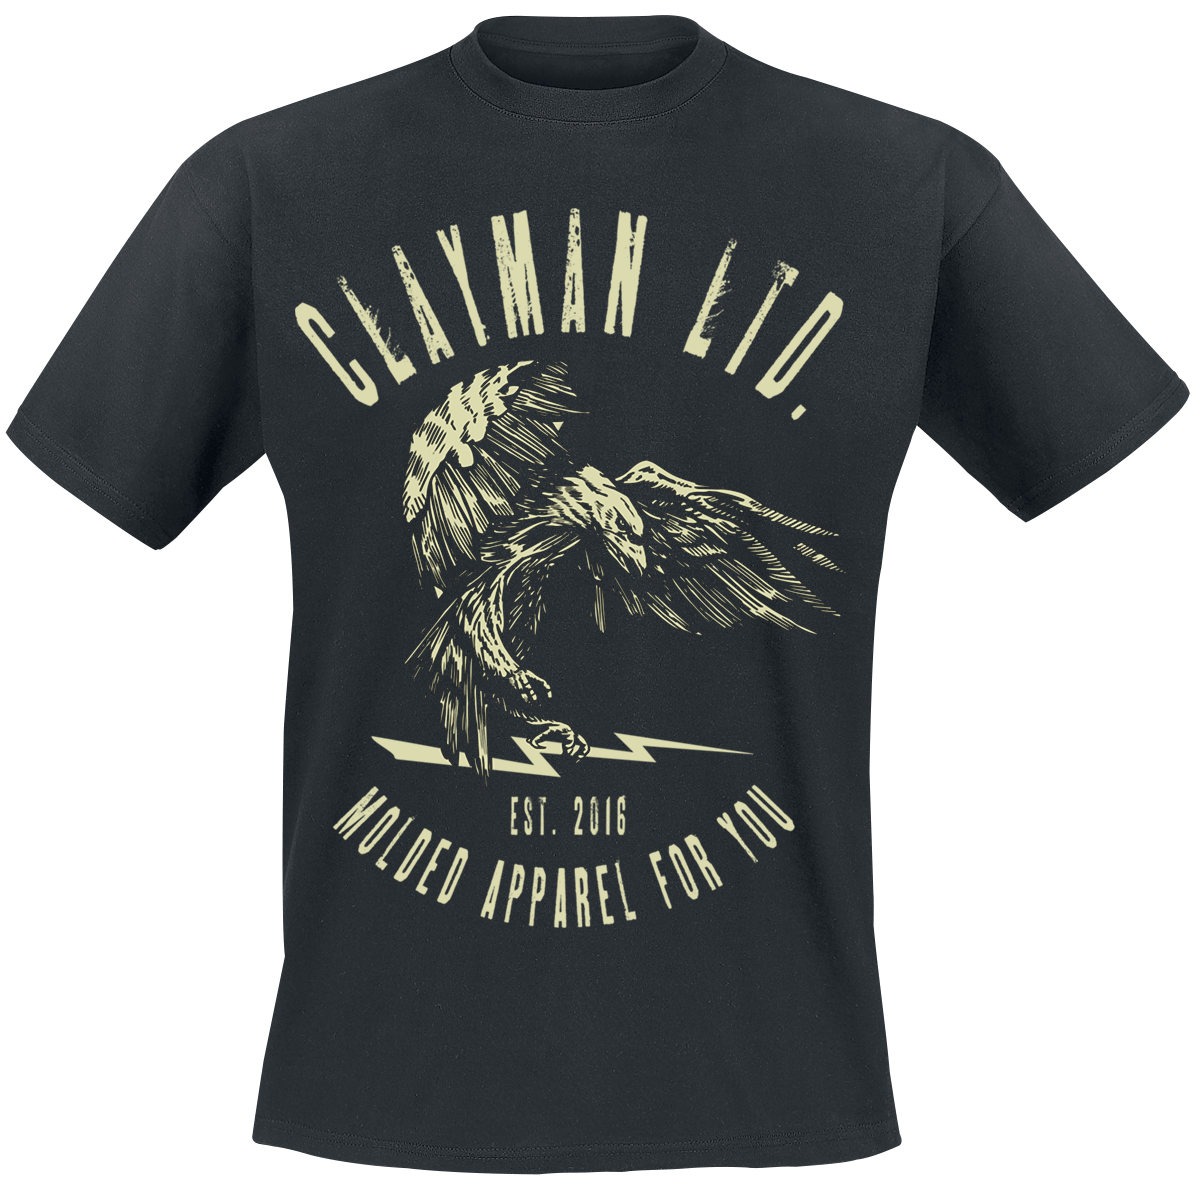 Clayman Ltd. - Death From Above - T-Shirt - black image